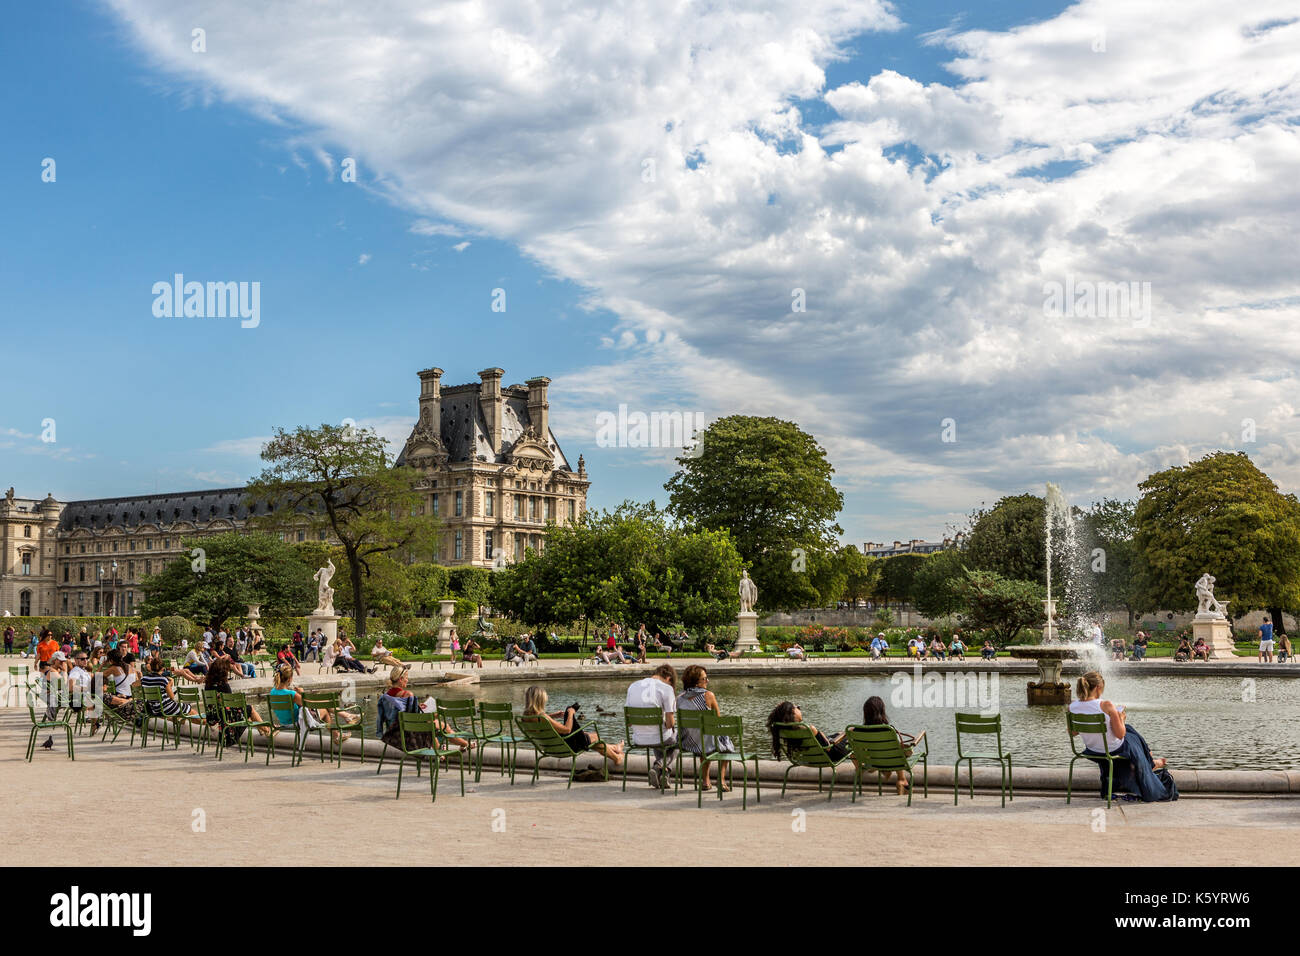 People sitting around the octagonal basin along the Tuileries Garden in Paris - Stock Image